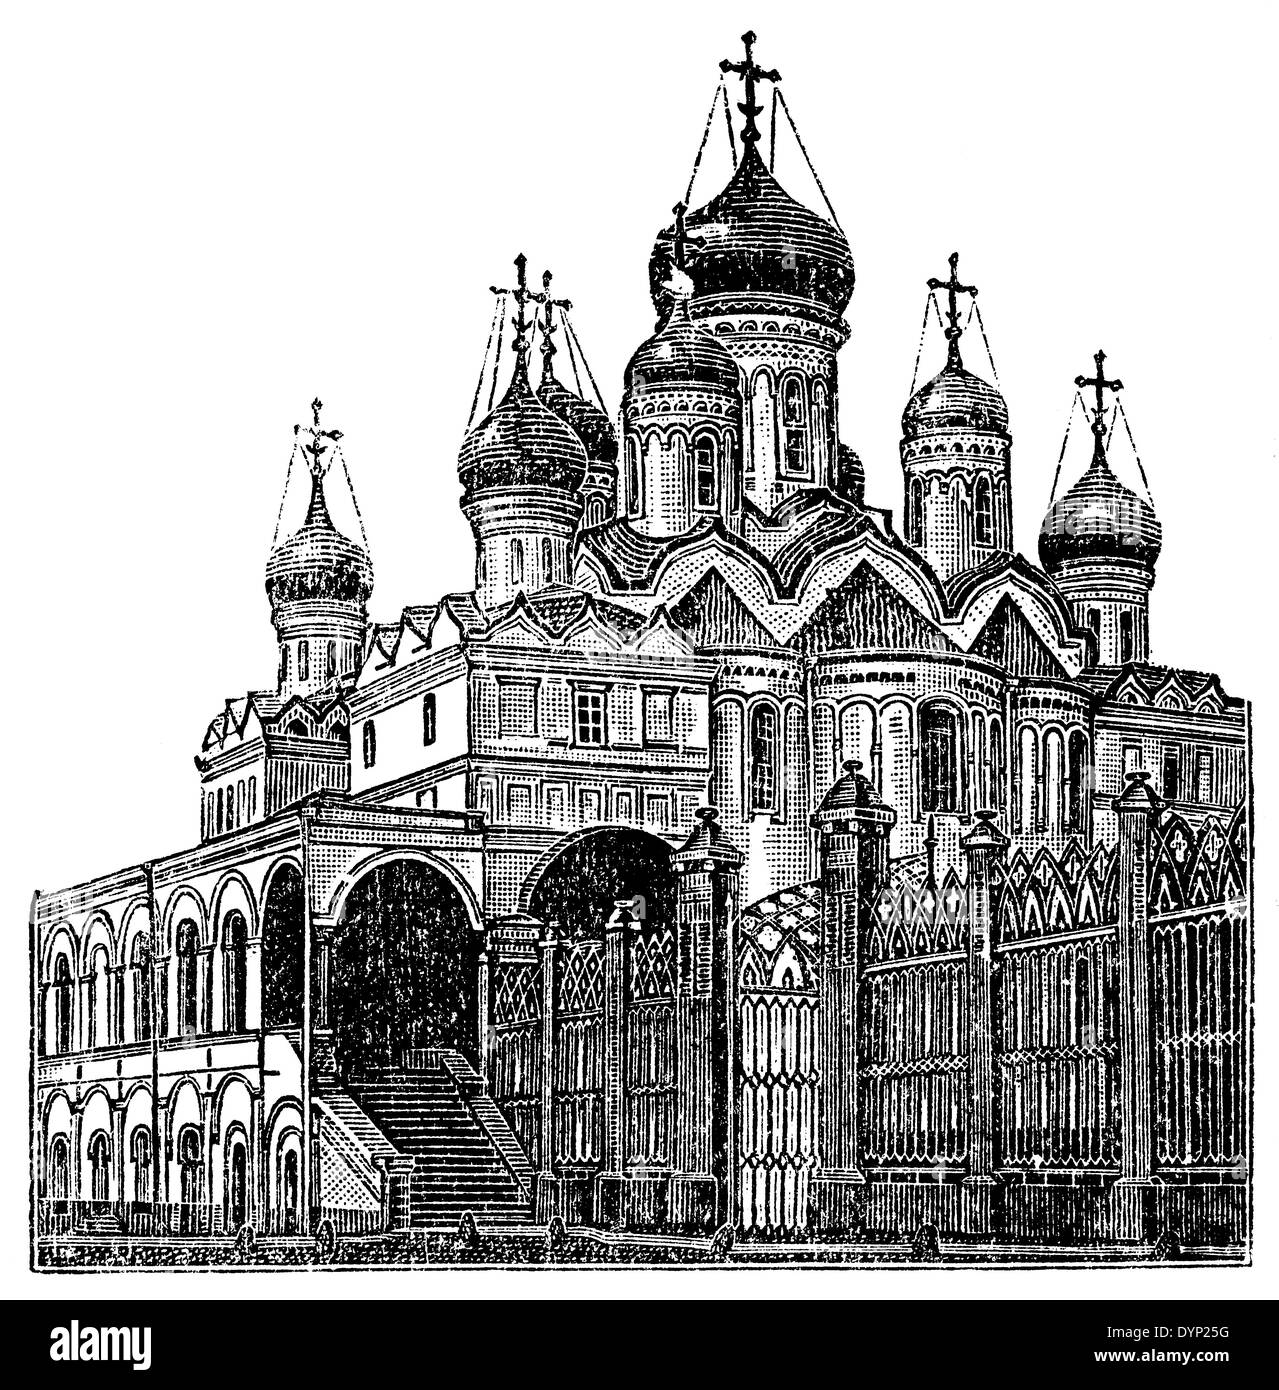 Annunciation cathedral of Moscow Kremlin (1490), Moscow, Russia, illustration from Soviet encyclopedia, 1927 - Stock Image